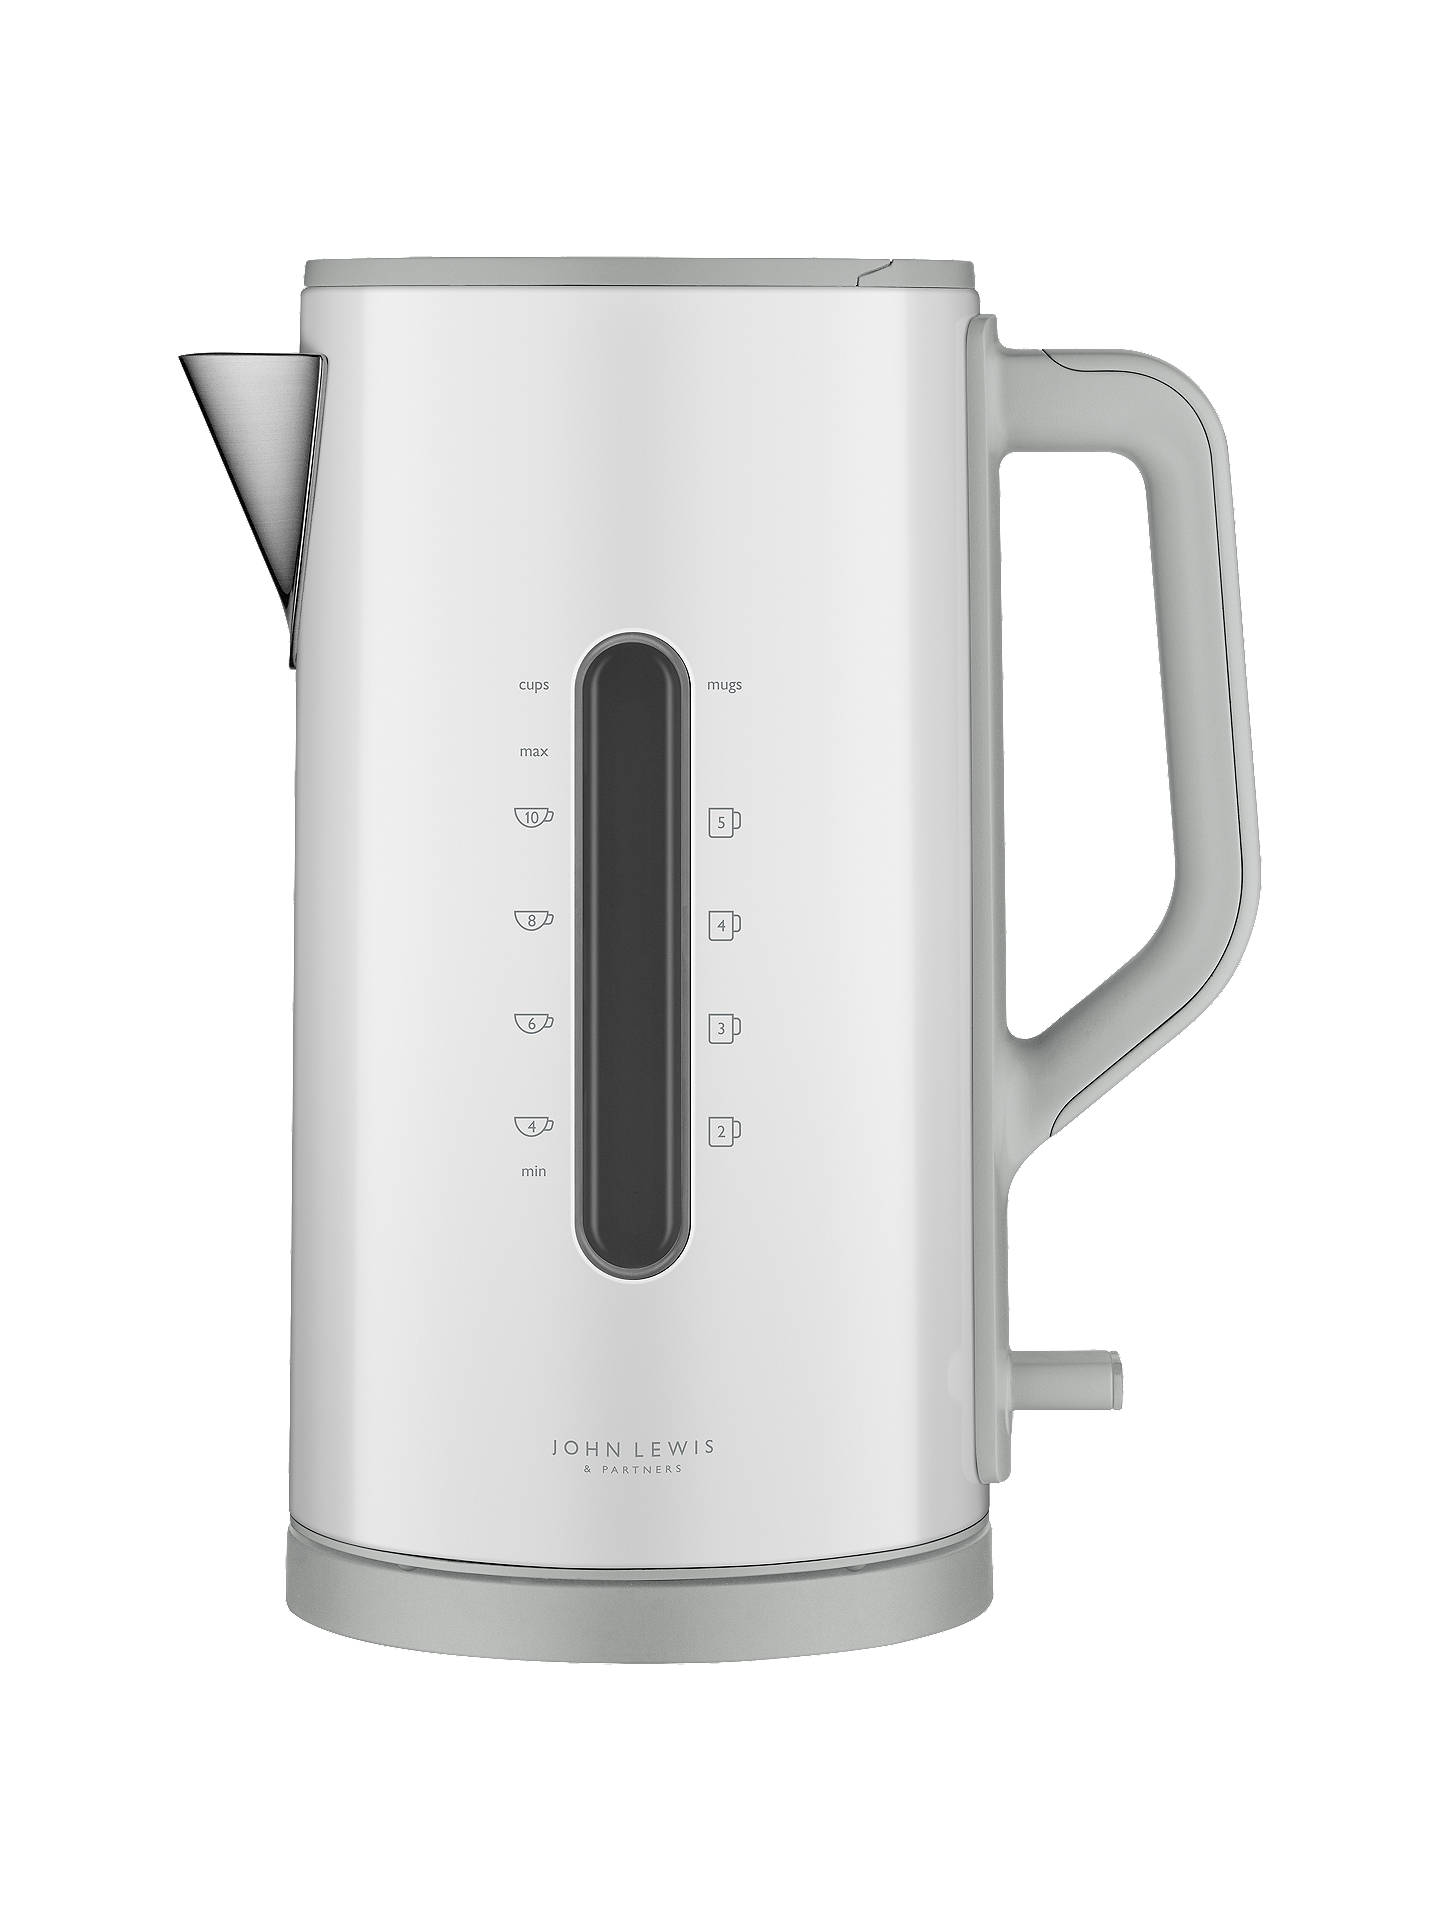 Buy John Lewis & Partners Simplicity Electric Kettle, White Steel Online at johnlewis.com